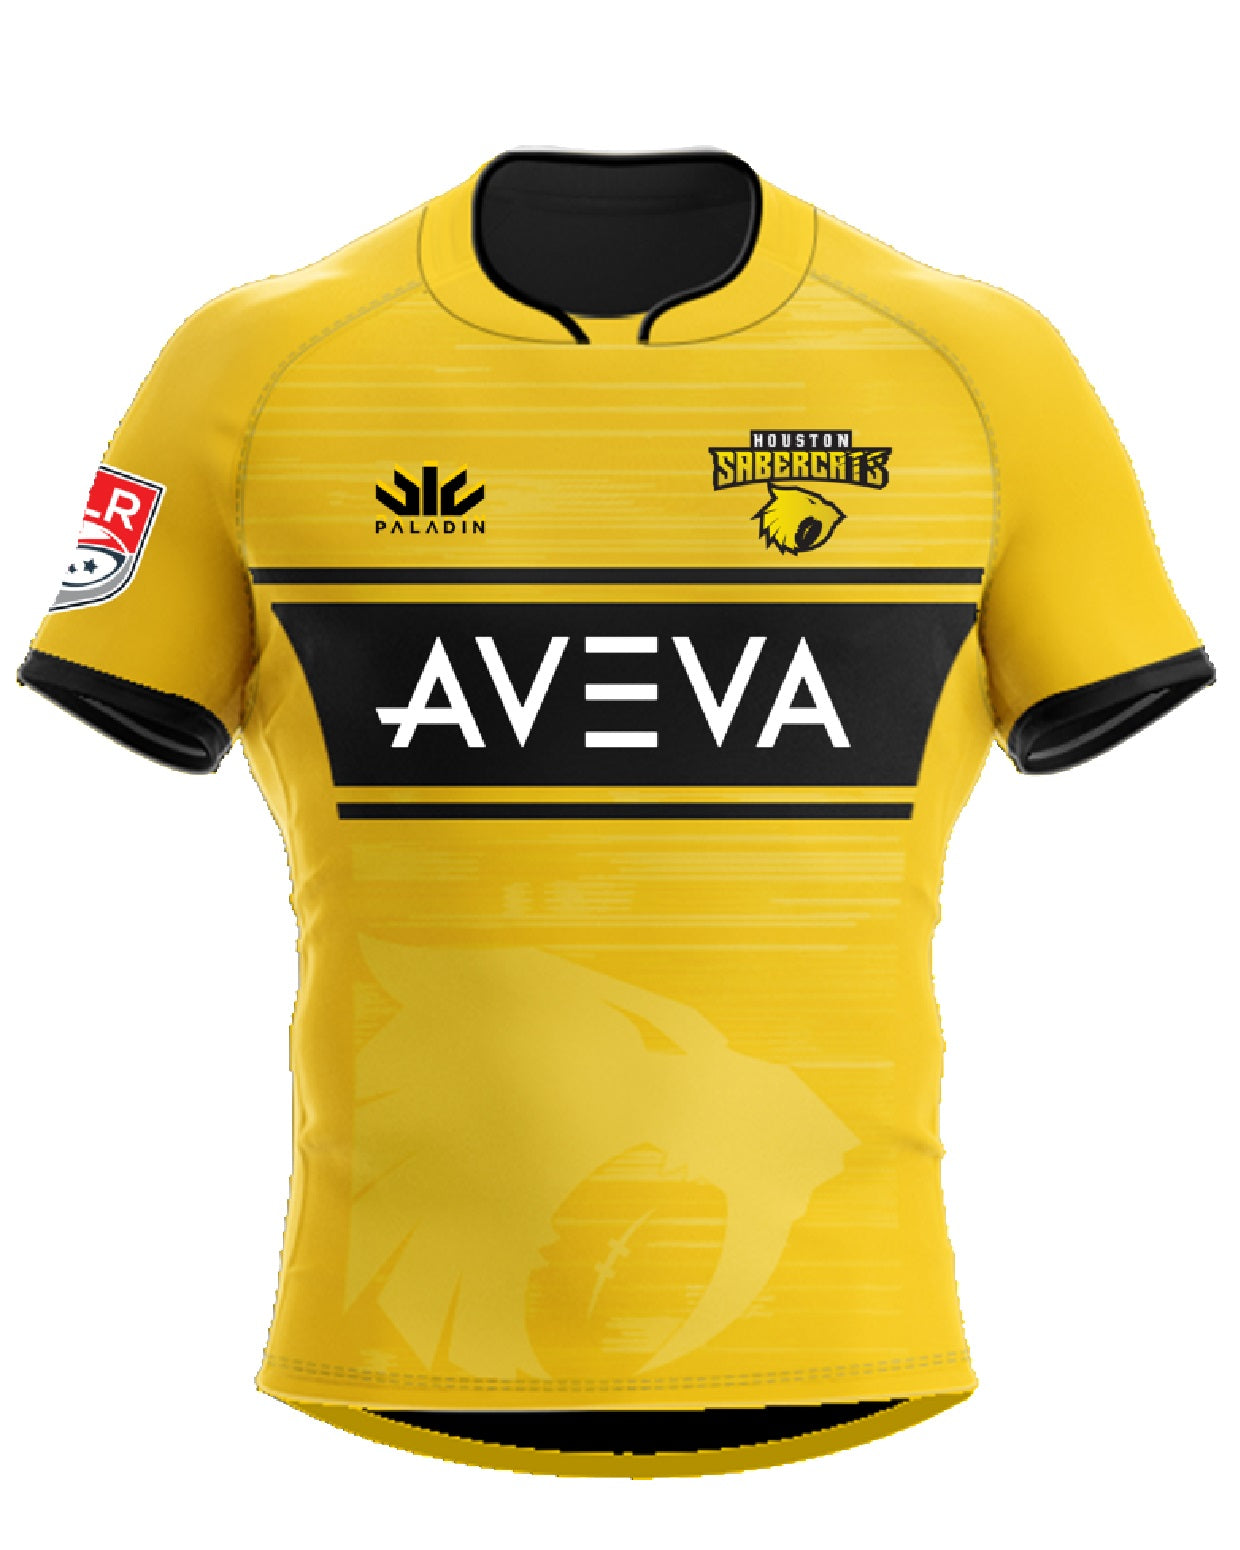 Sabercats Replica Away Jersey